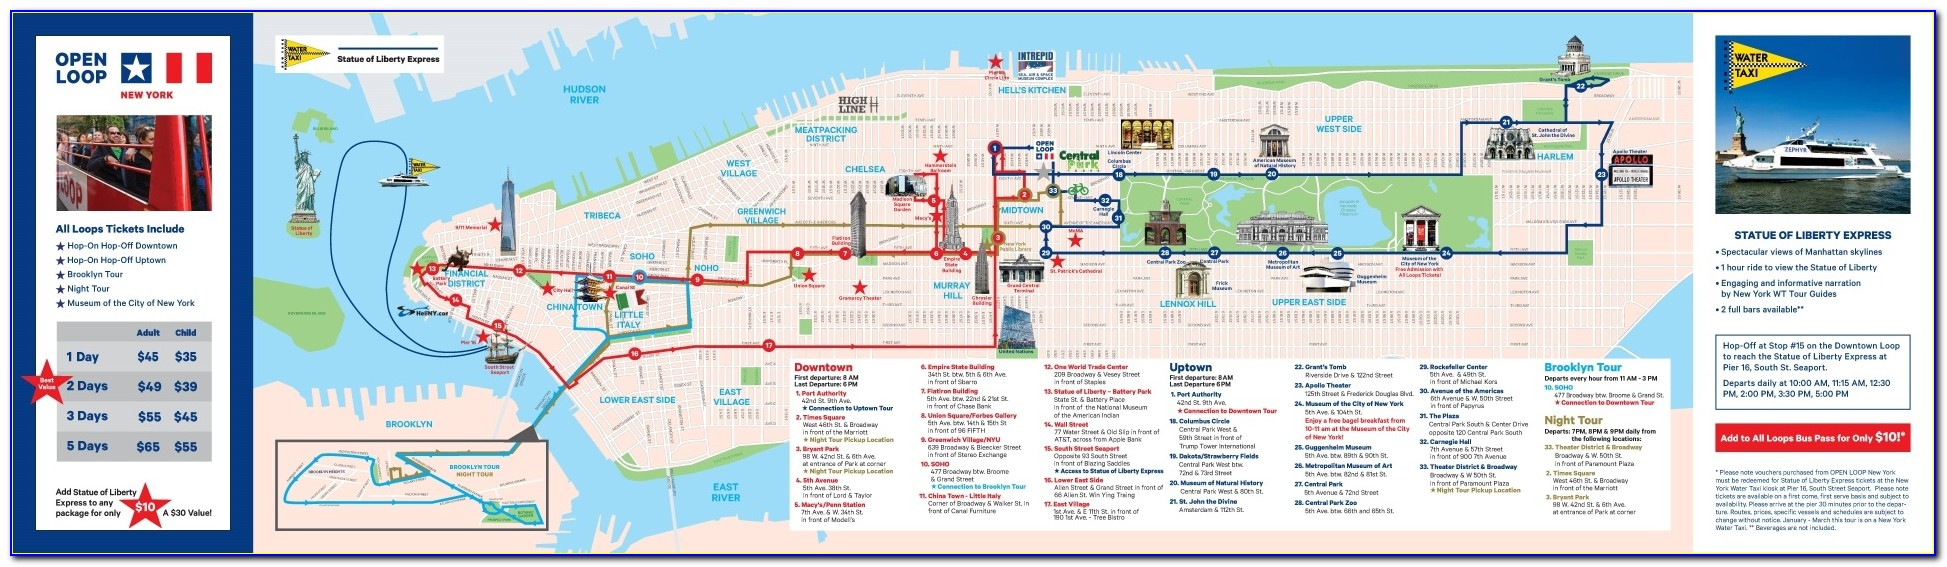 New York City Hop On Hop Off Bus Map